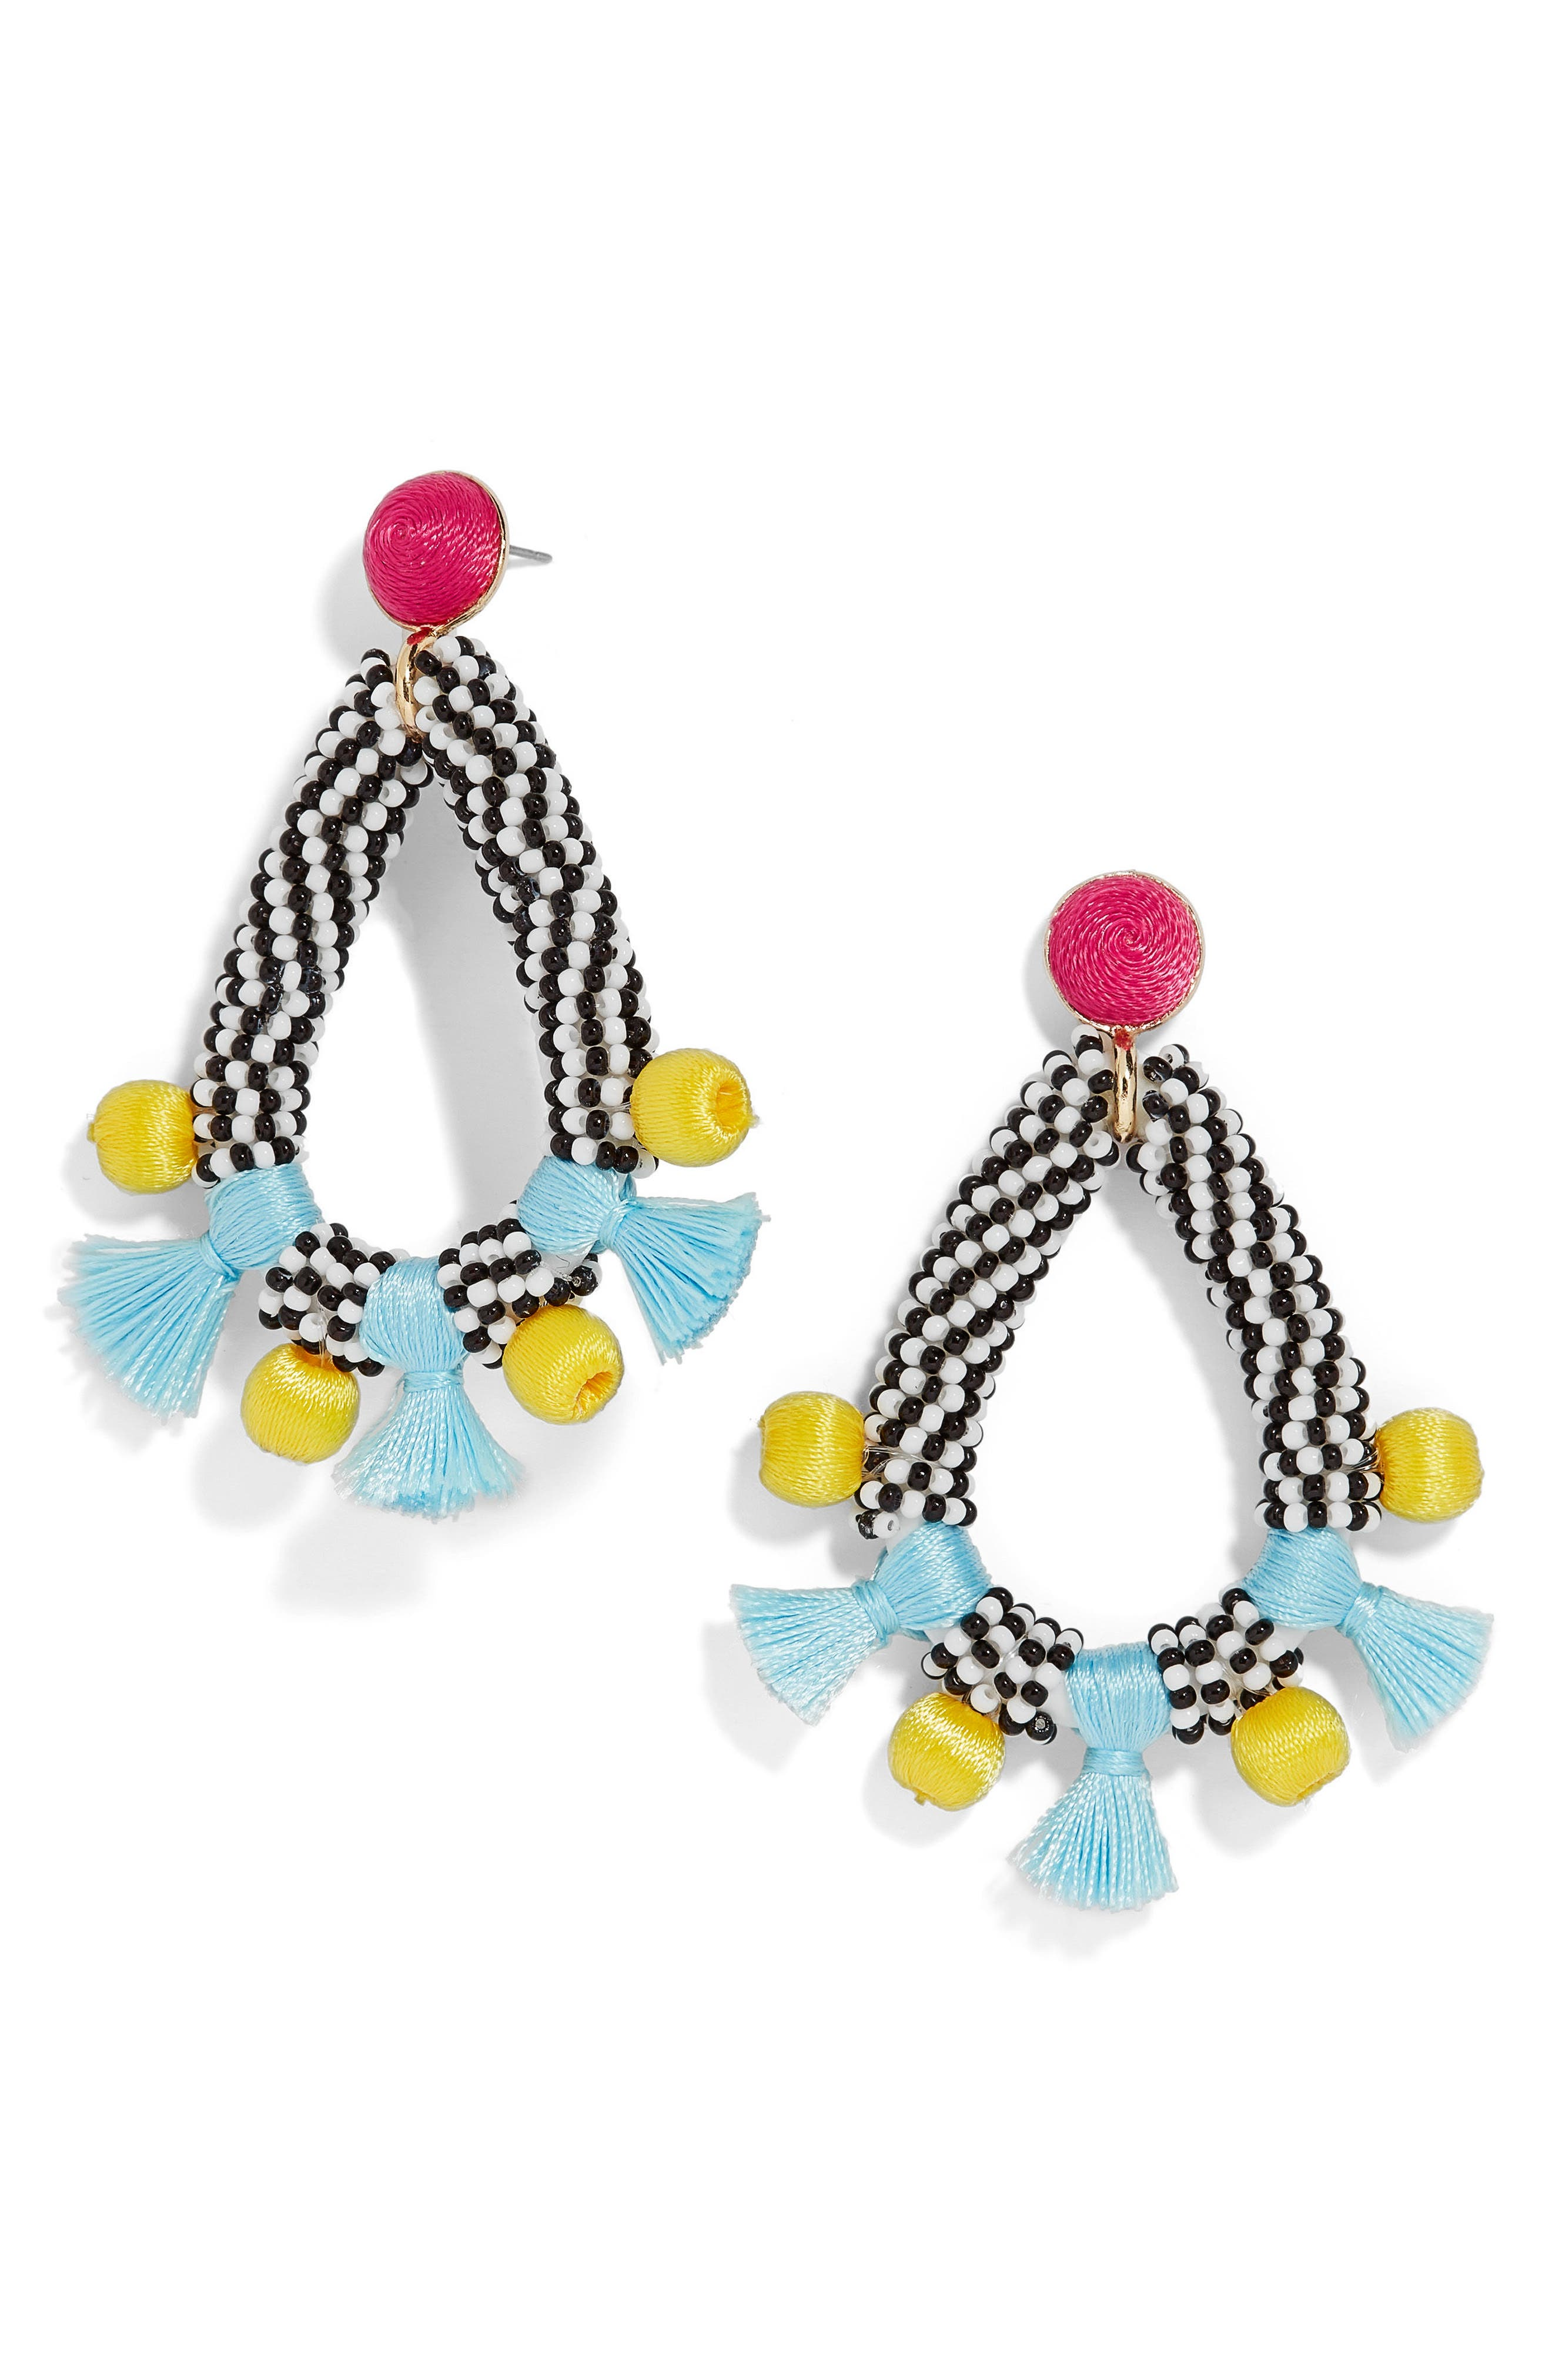 Coral Reef Drop Earrings,                             Main thumbnail 1, color,                             Turquoise